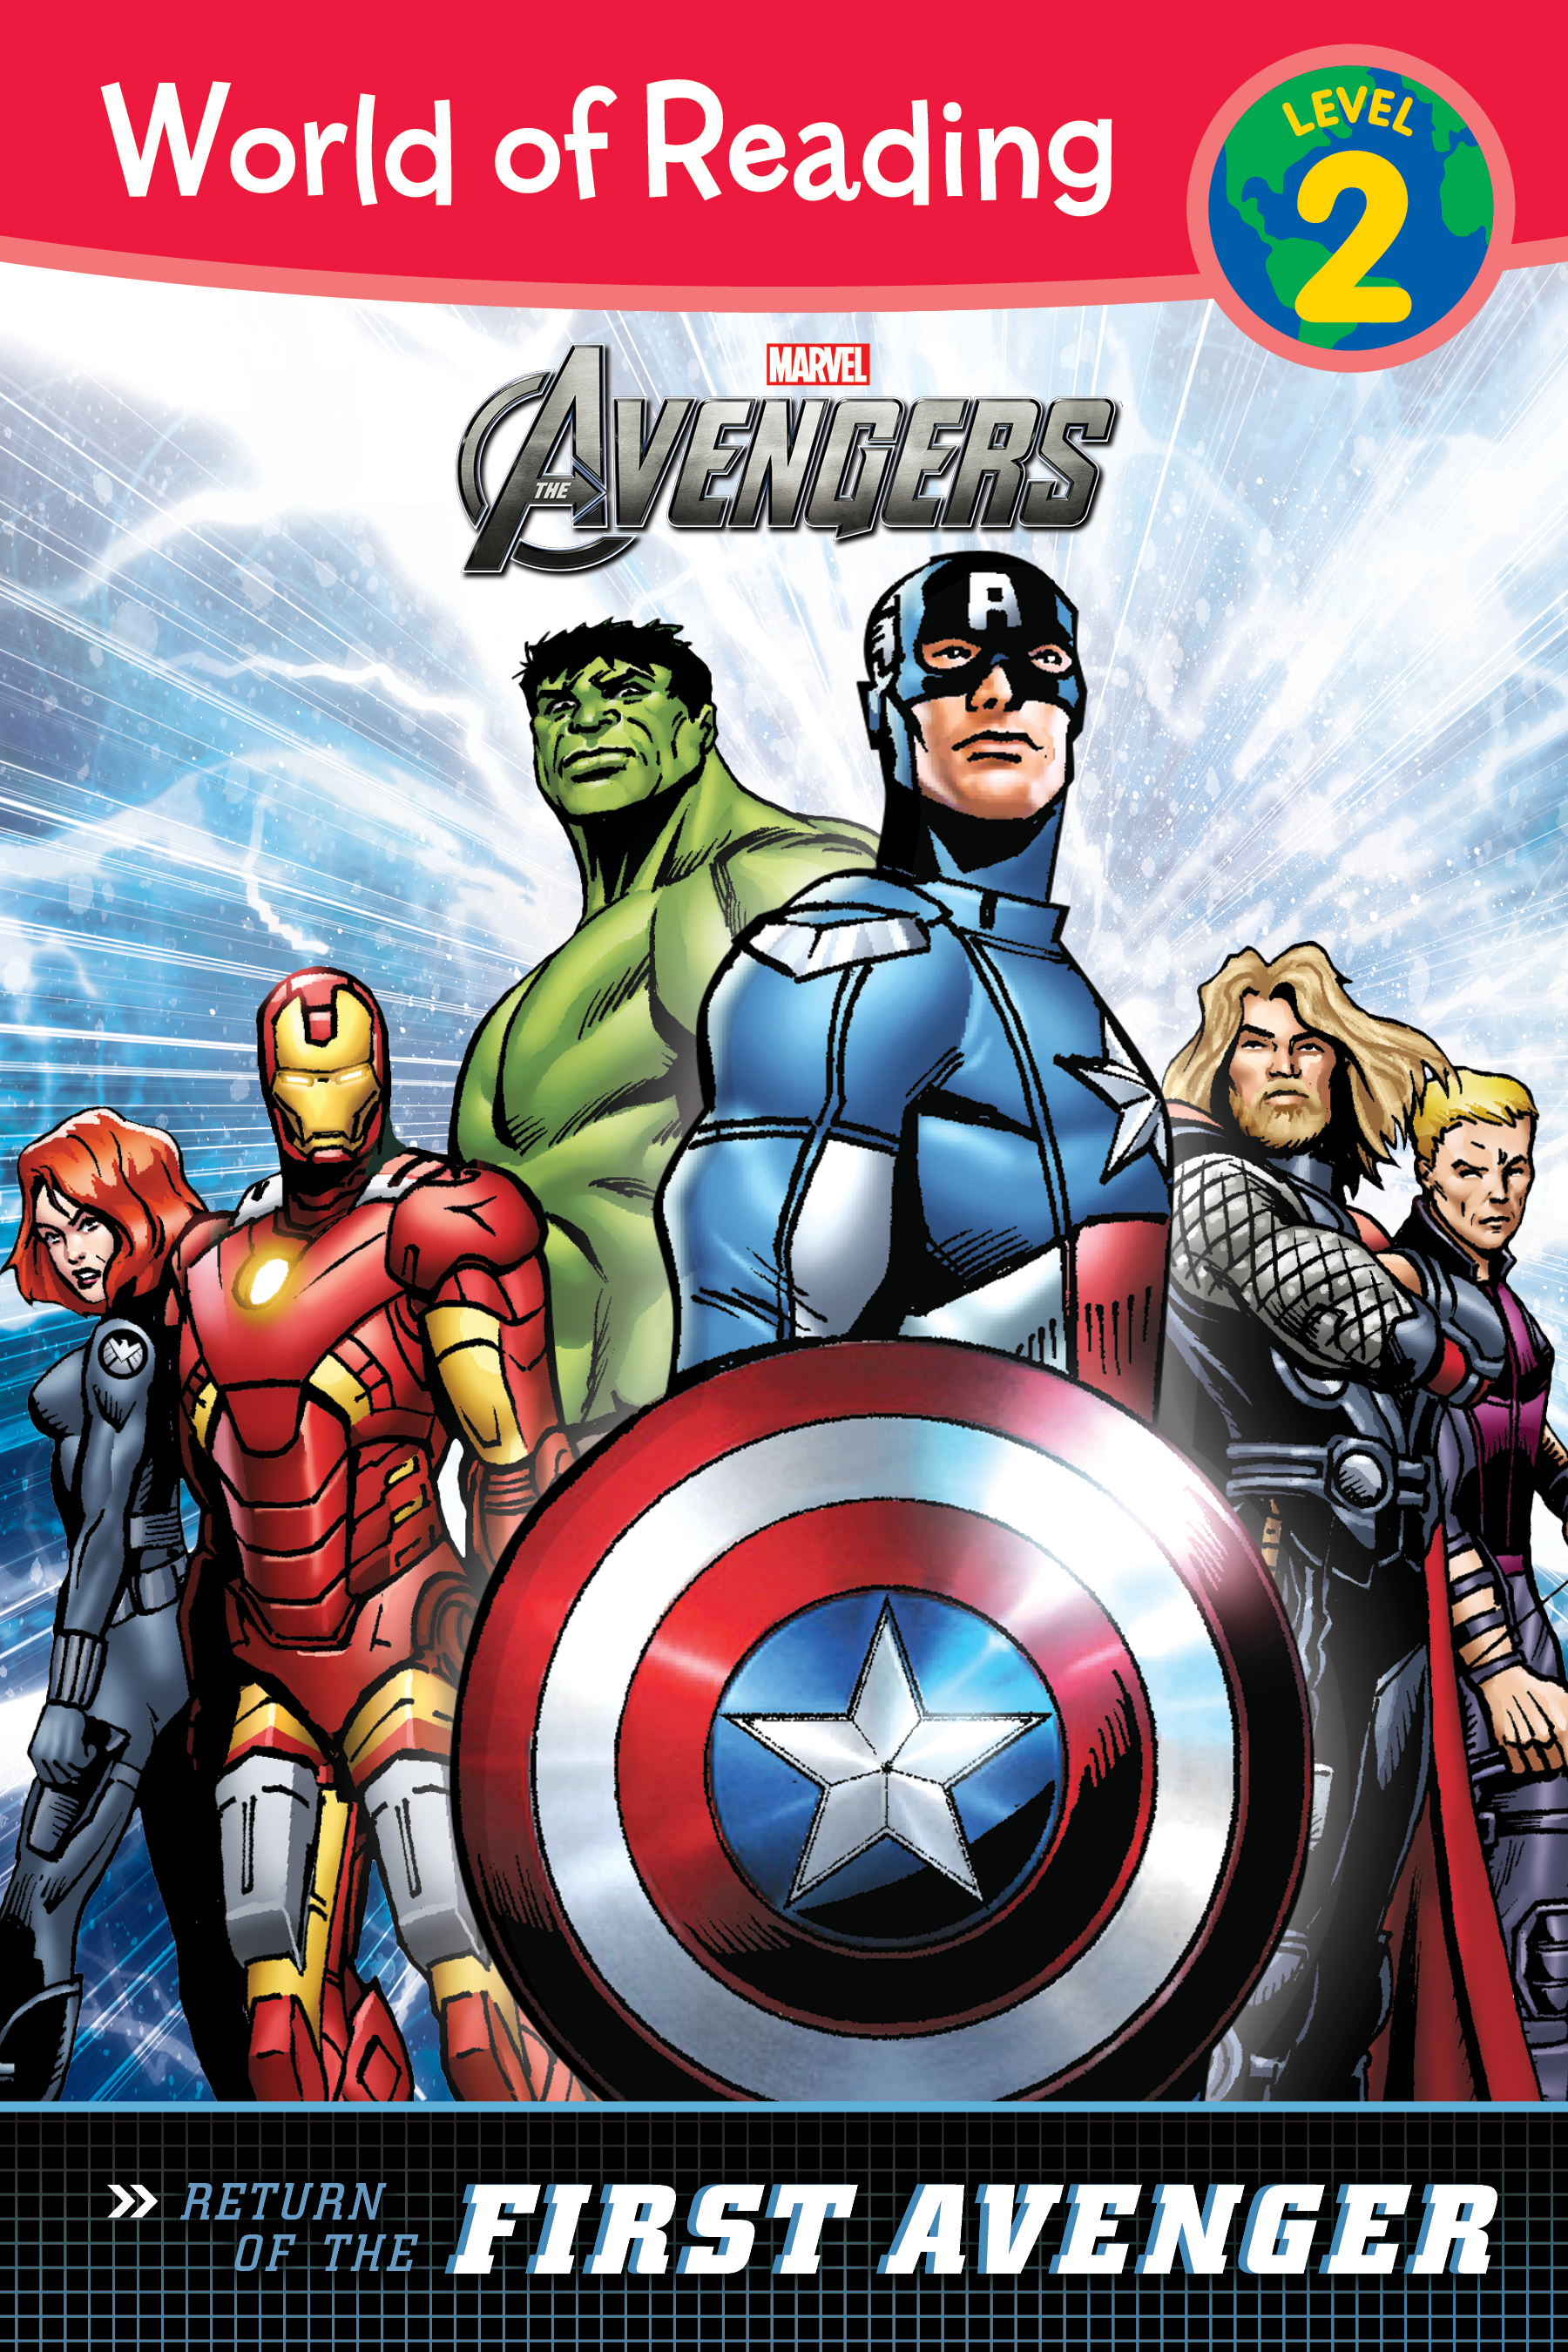 The Return Of The First Avengers